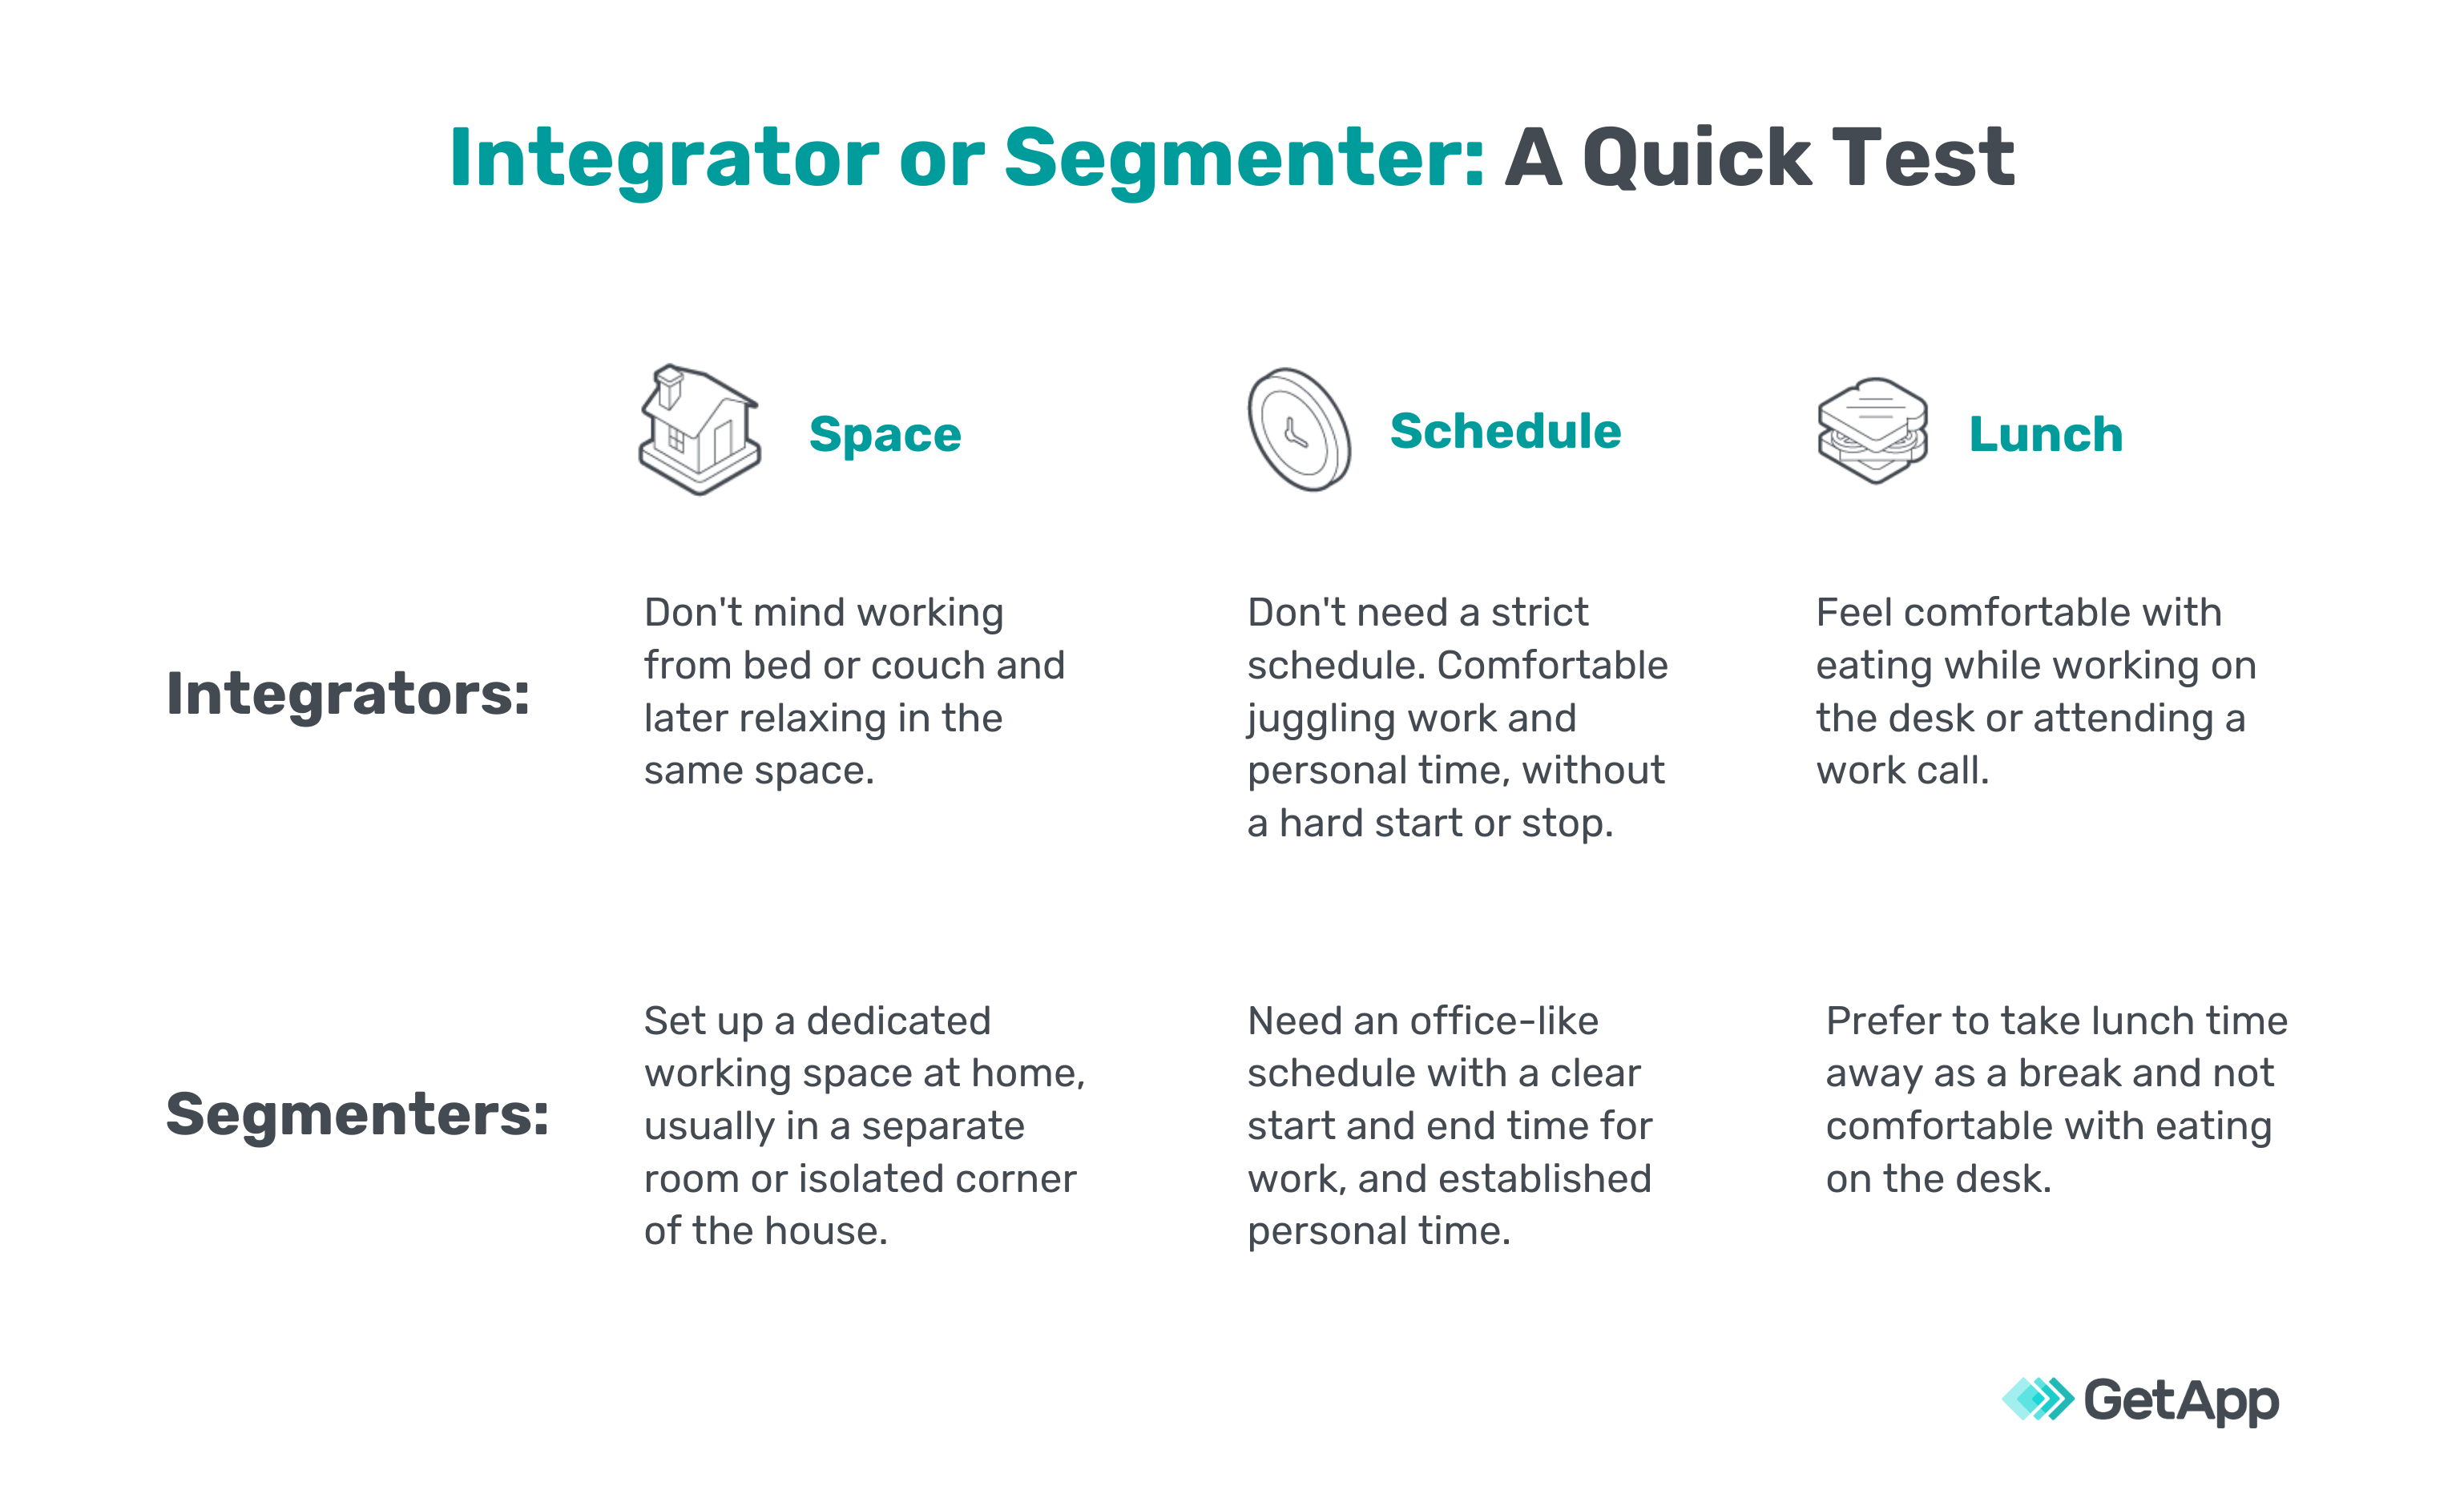 A quick test to find out if you're an integrator or a segmenter.